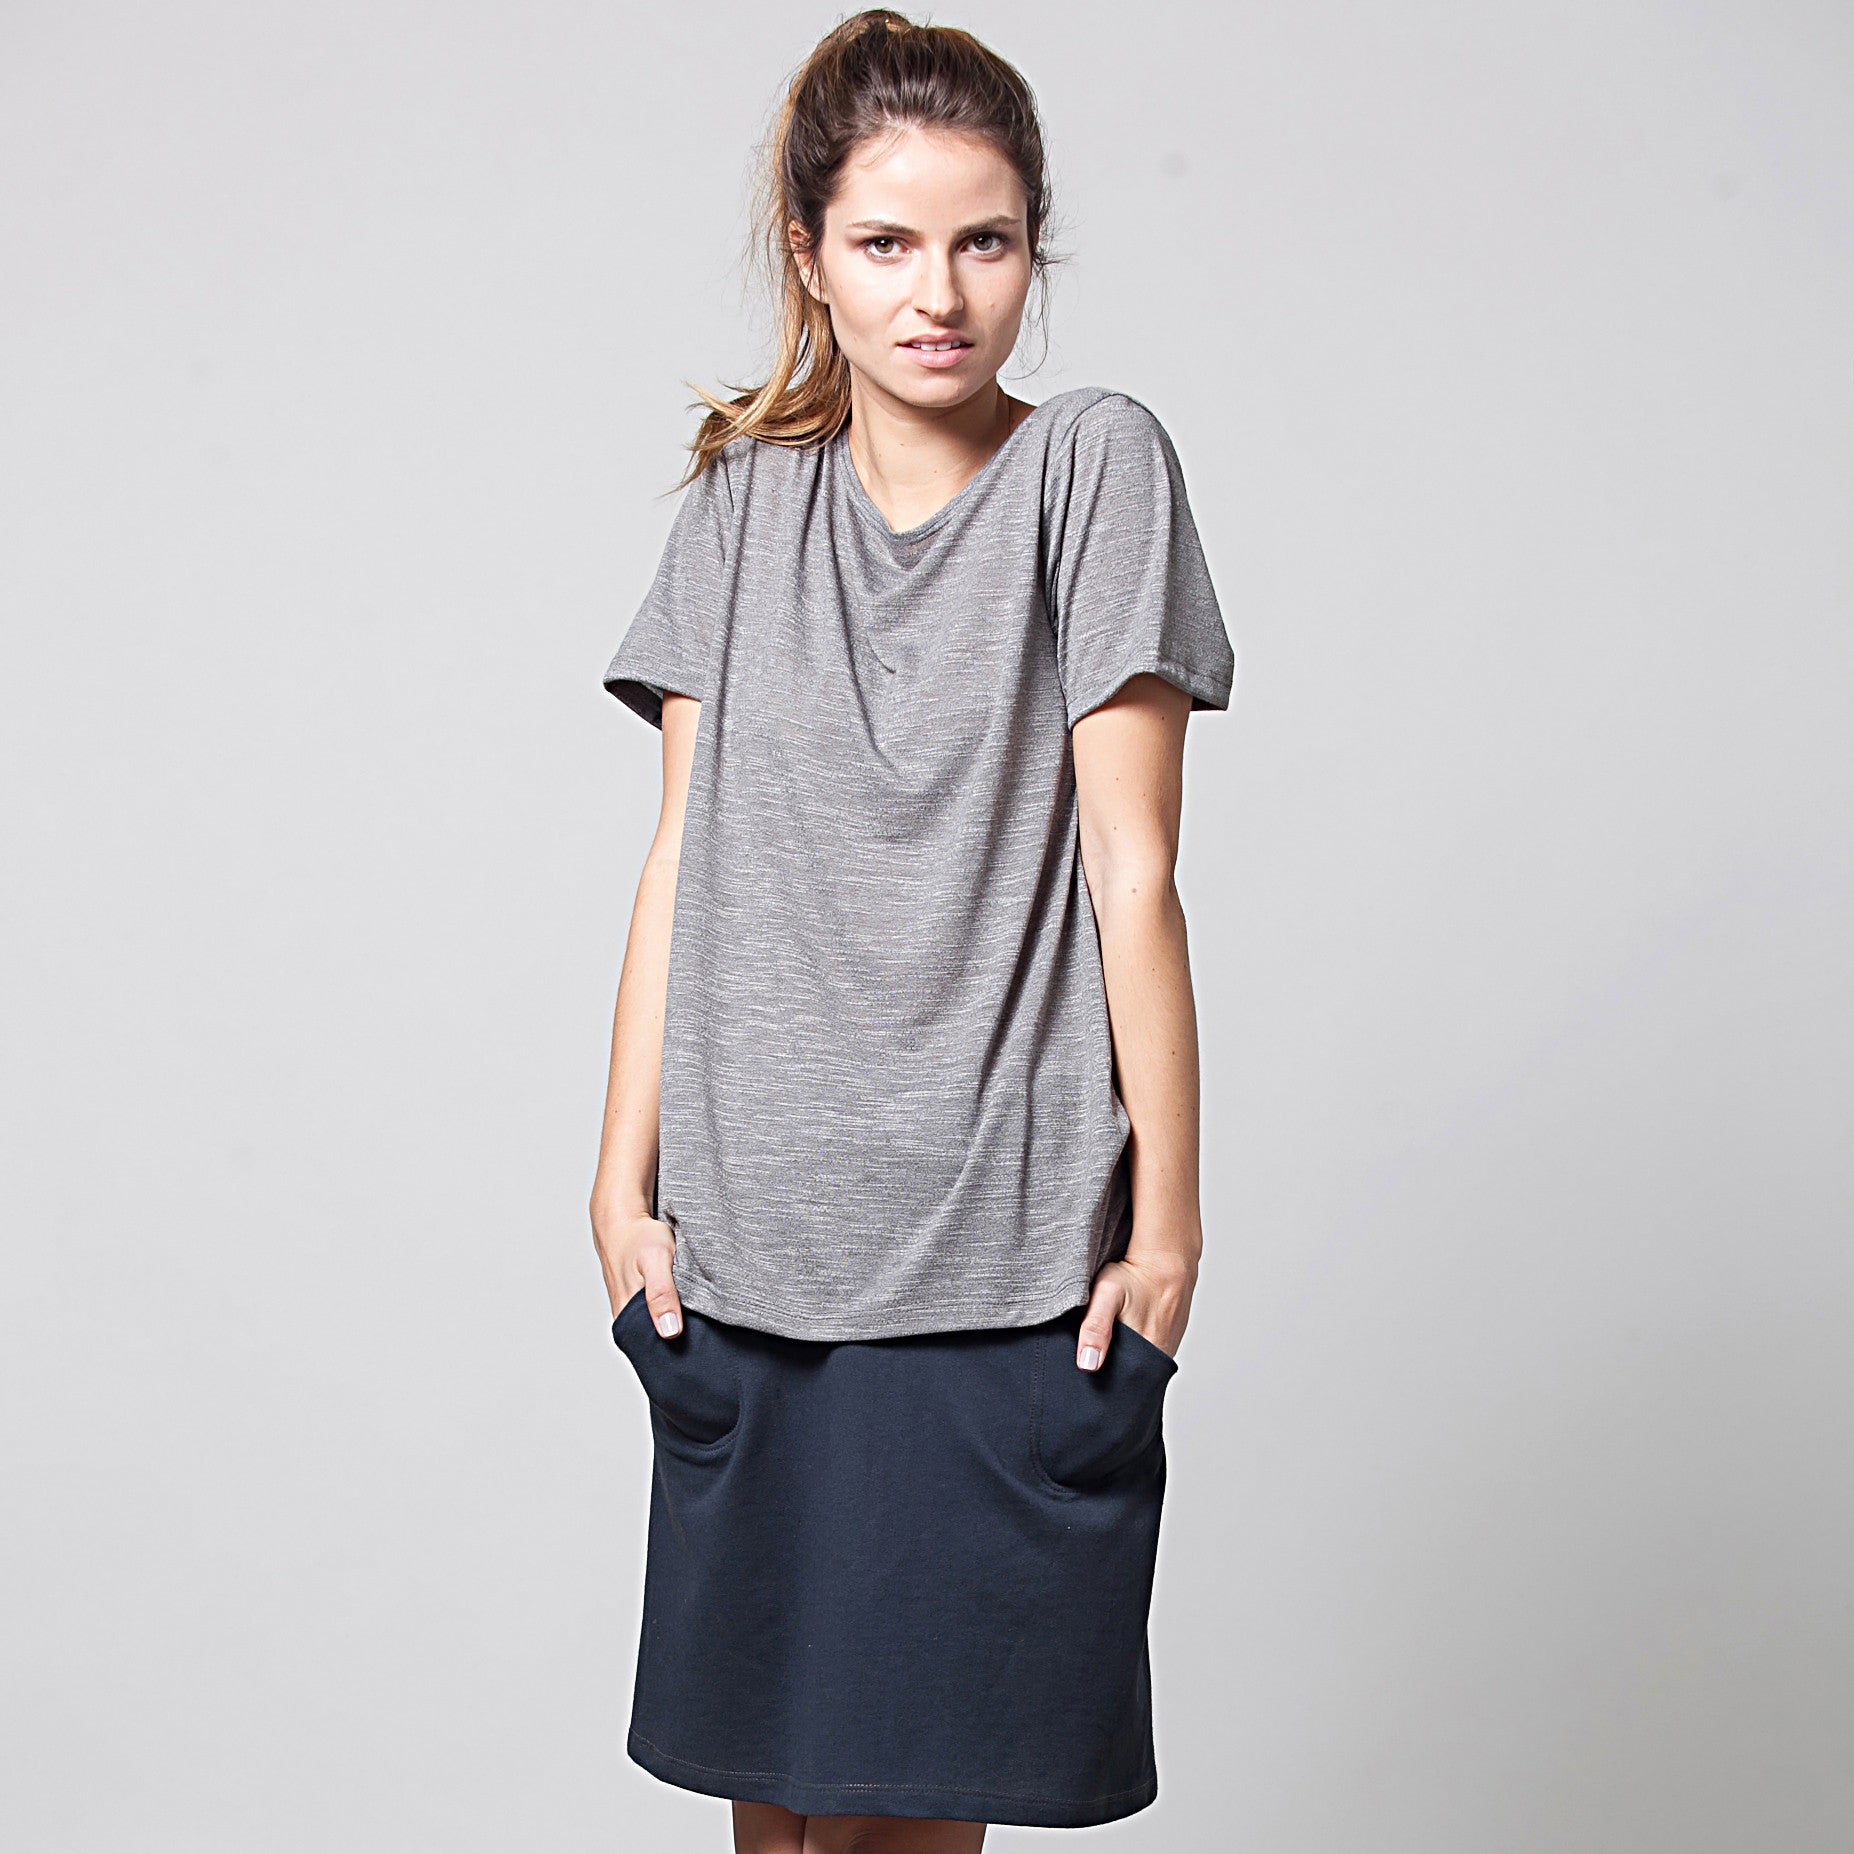 A-line skirt in french terry - DuendeFashion  - 2